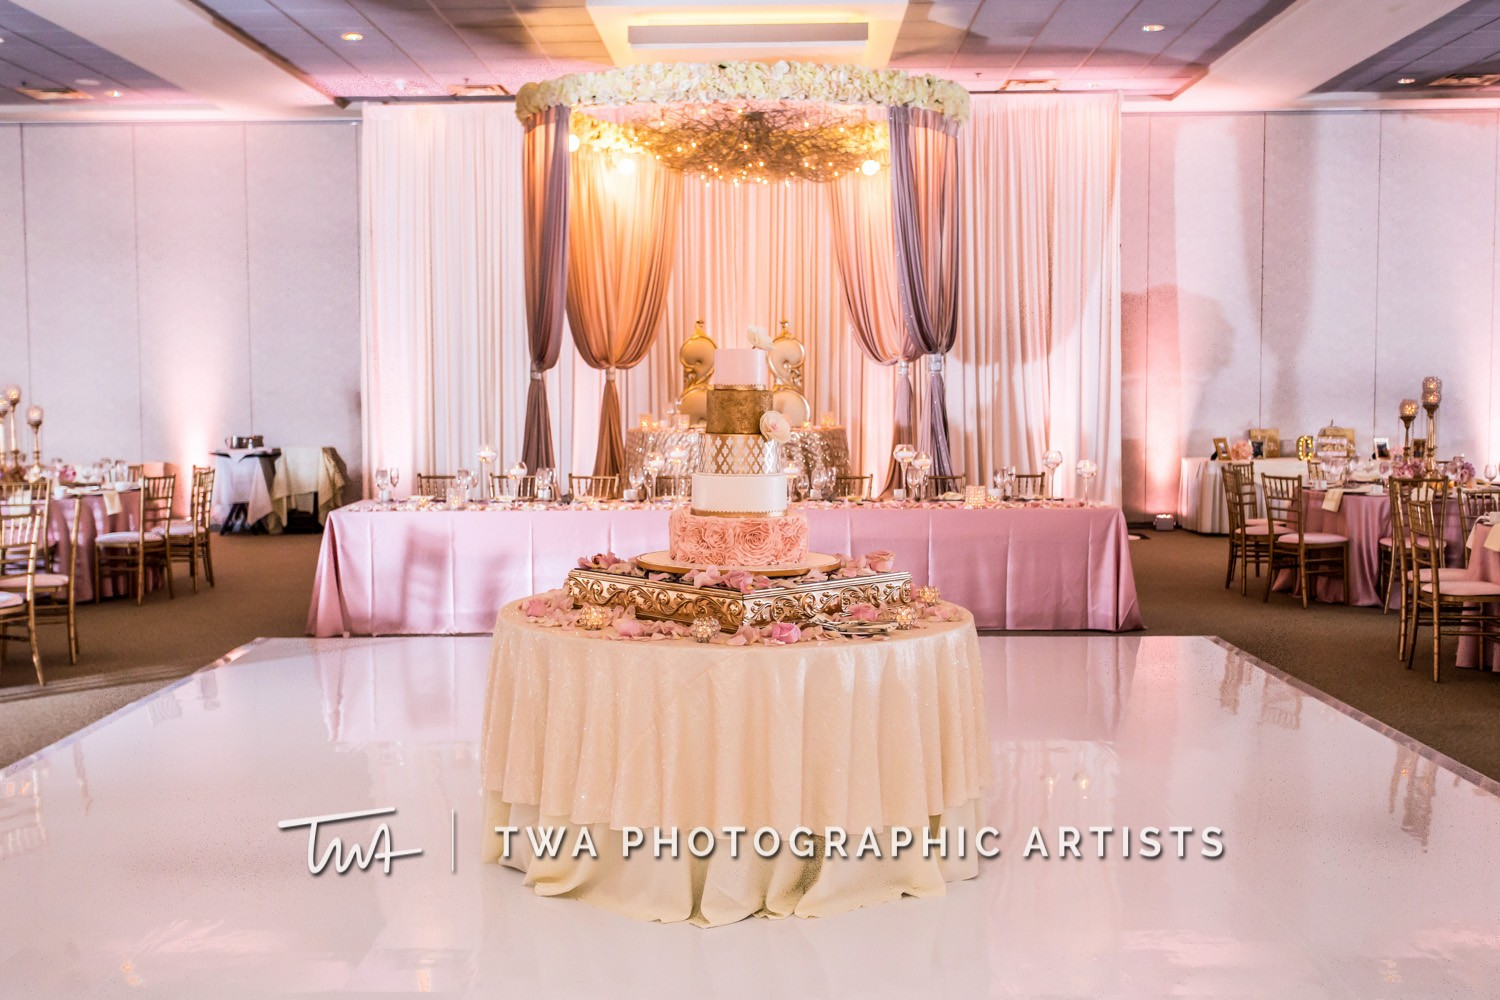 Chicago-Wedding-Photographer-TWA-Photographic-Artists-Belvedere-Banquets_Lavender_Chambers_SG-0386